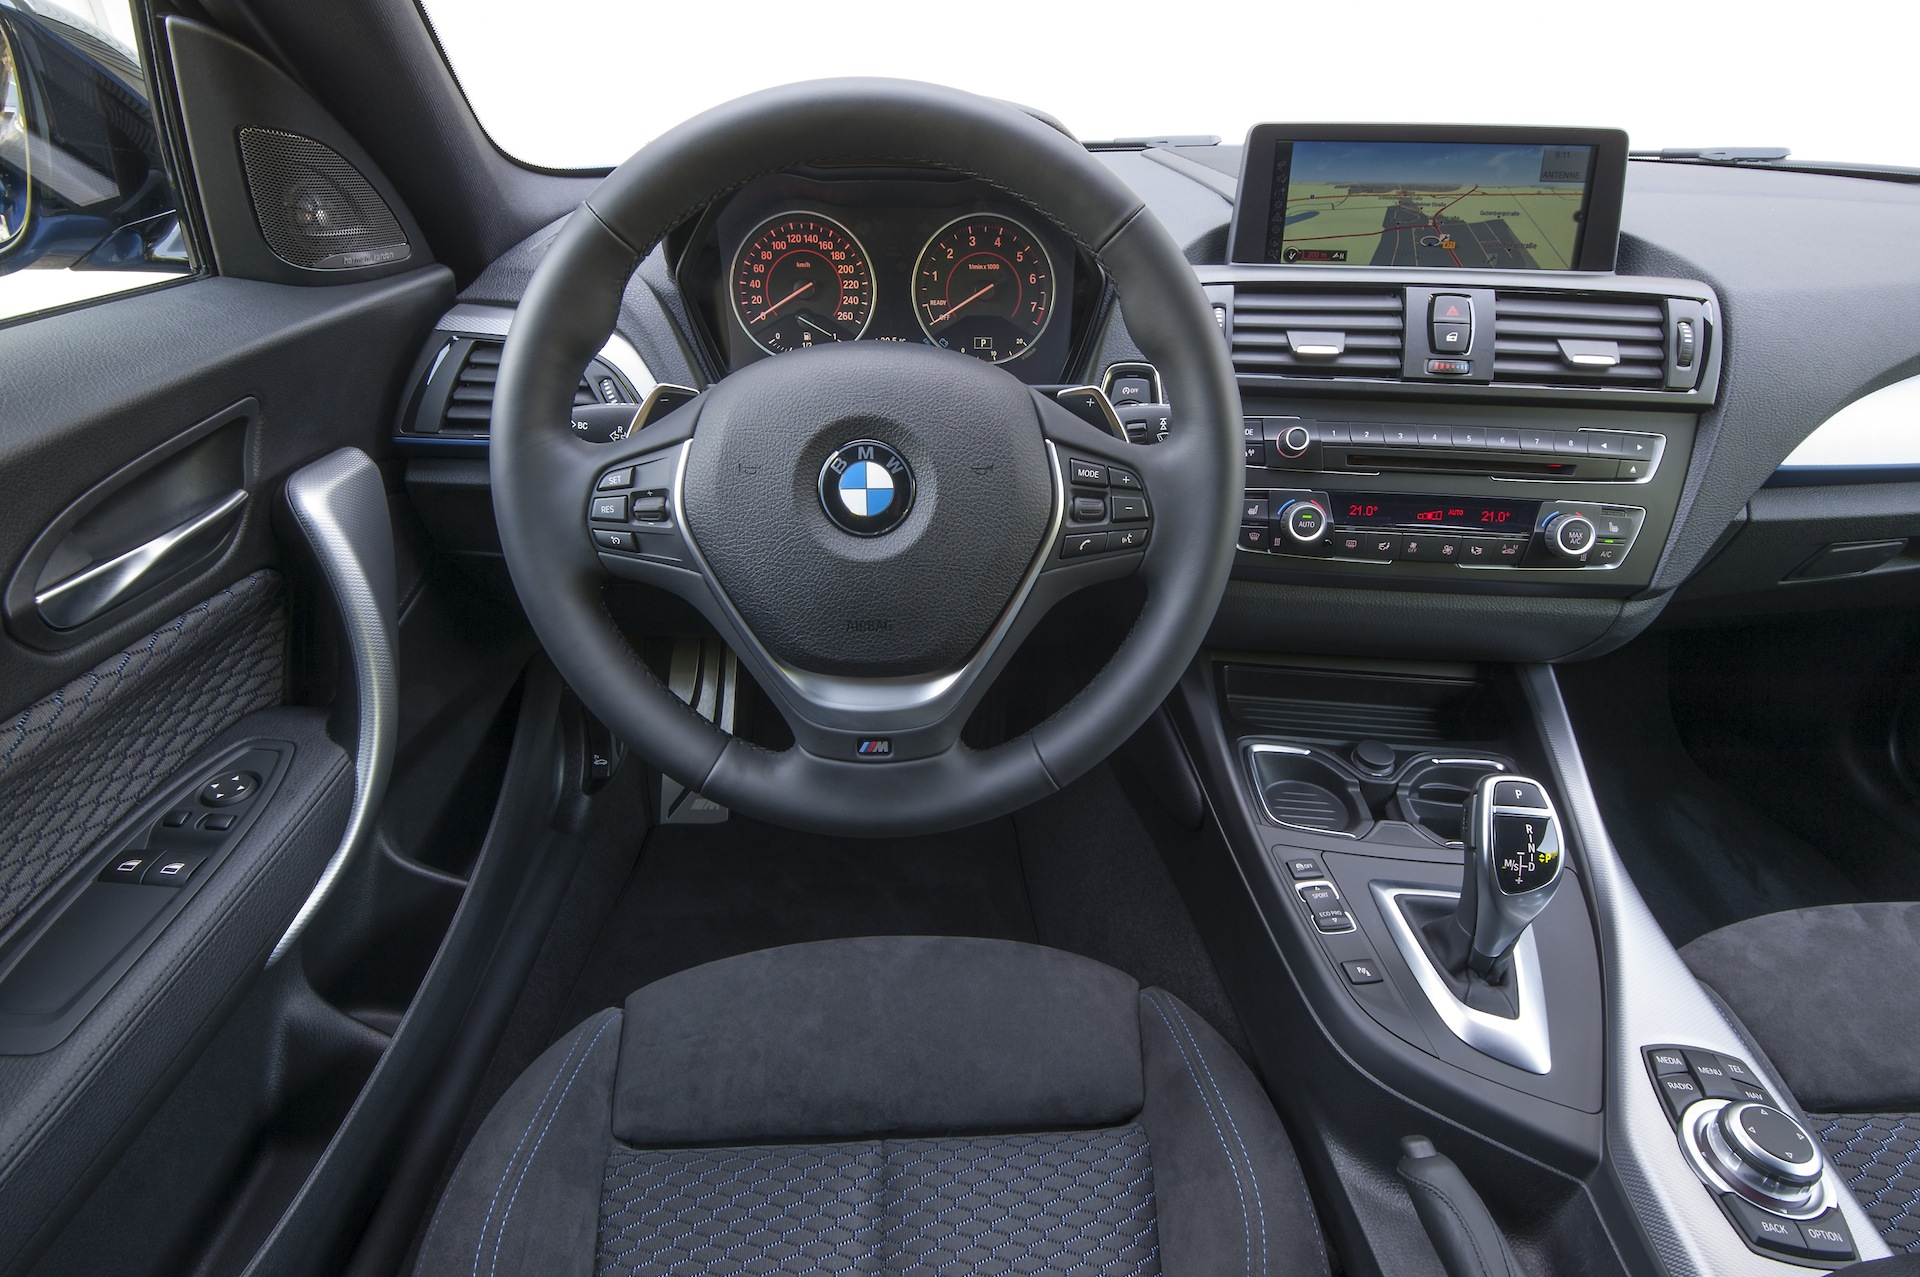 320I Vs 328I >> Sport vs M Sport Steering wheel